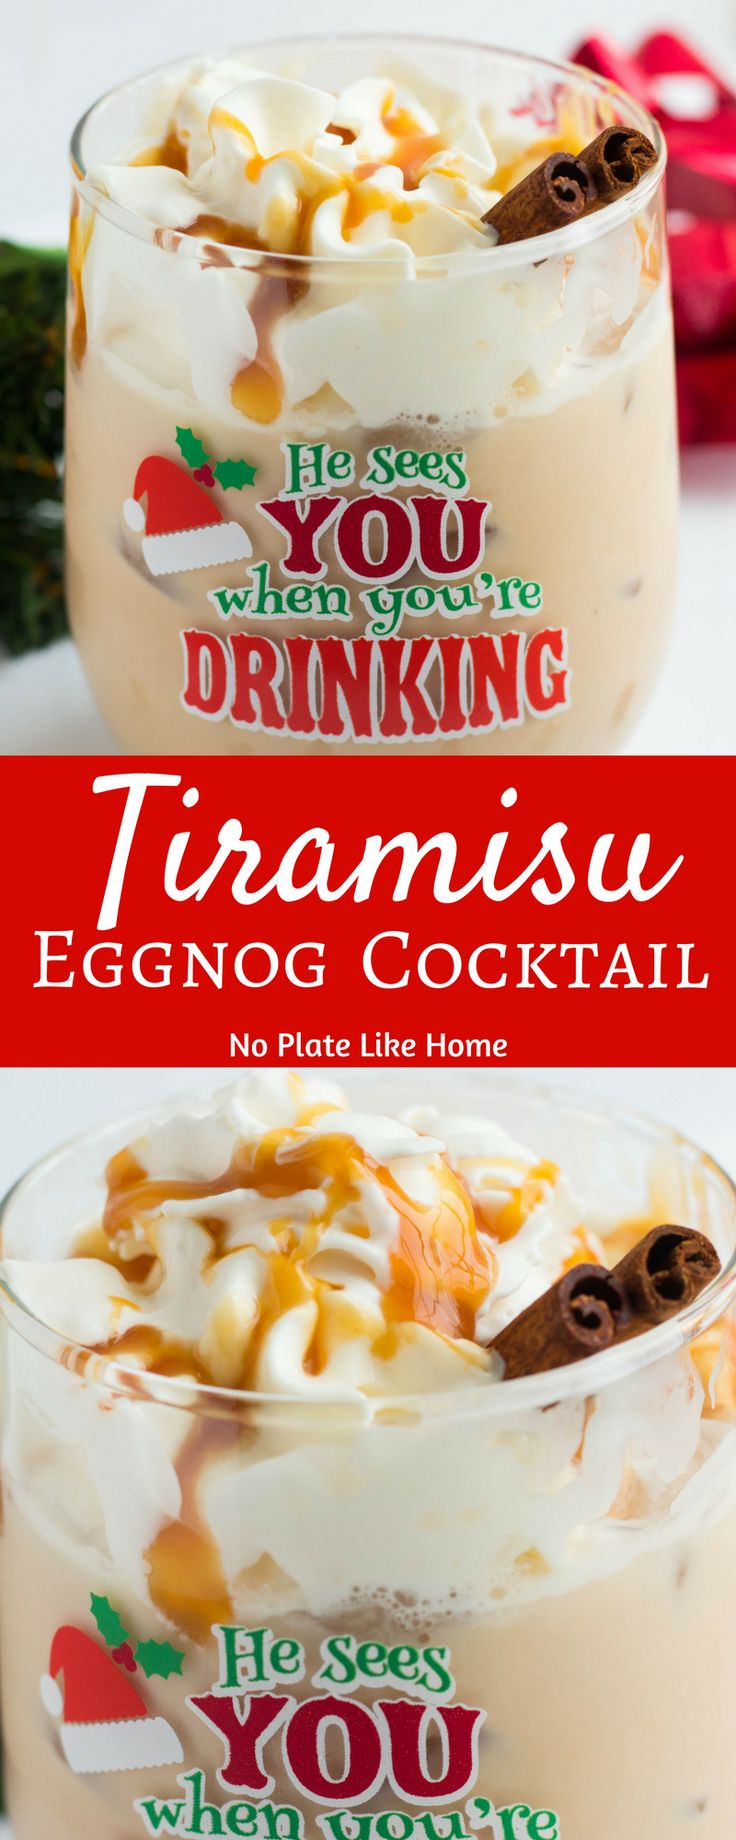 Tiramisu Eggnog Cocktail is an easy and simple cocktail to make for holiday parties. Made with white rum, coffee liquor, eggnog, chocolate syrup and topped with whipped cream, who could resist? Pitcher instructions included. Pin for the holidays!